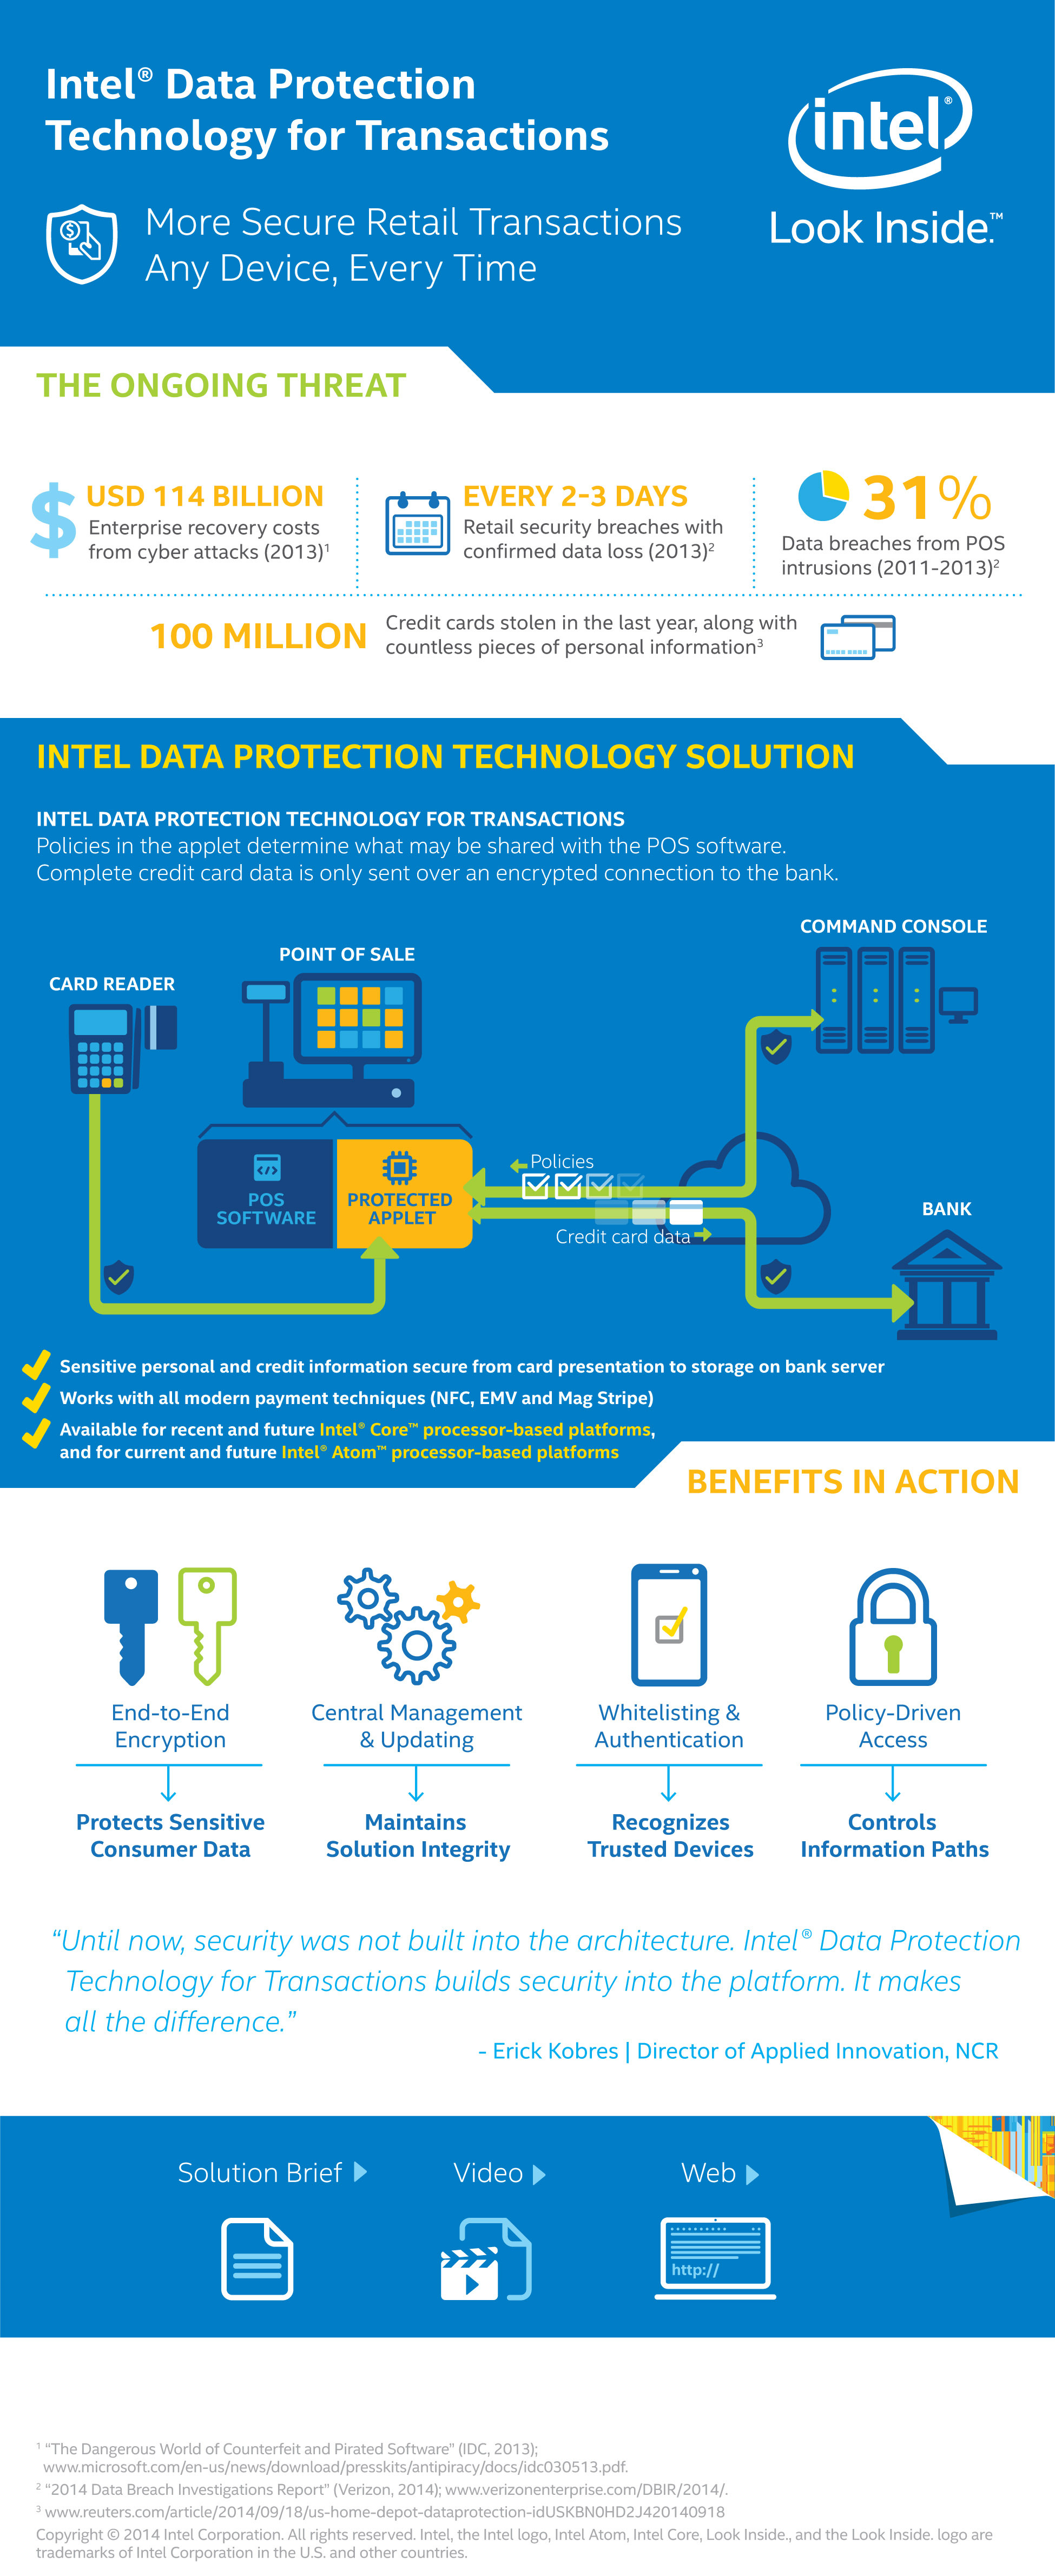 Intel Introduces Technology to Help Bridge Retail Security Gap ...